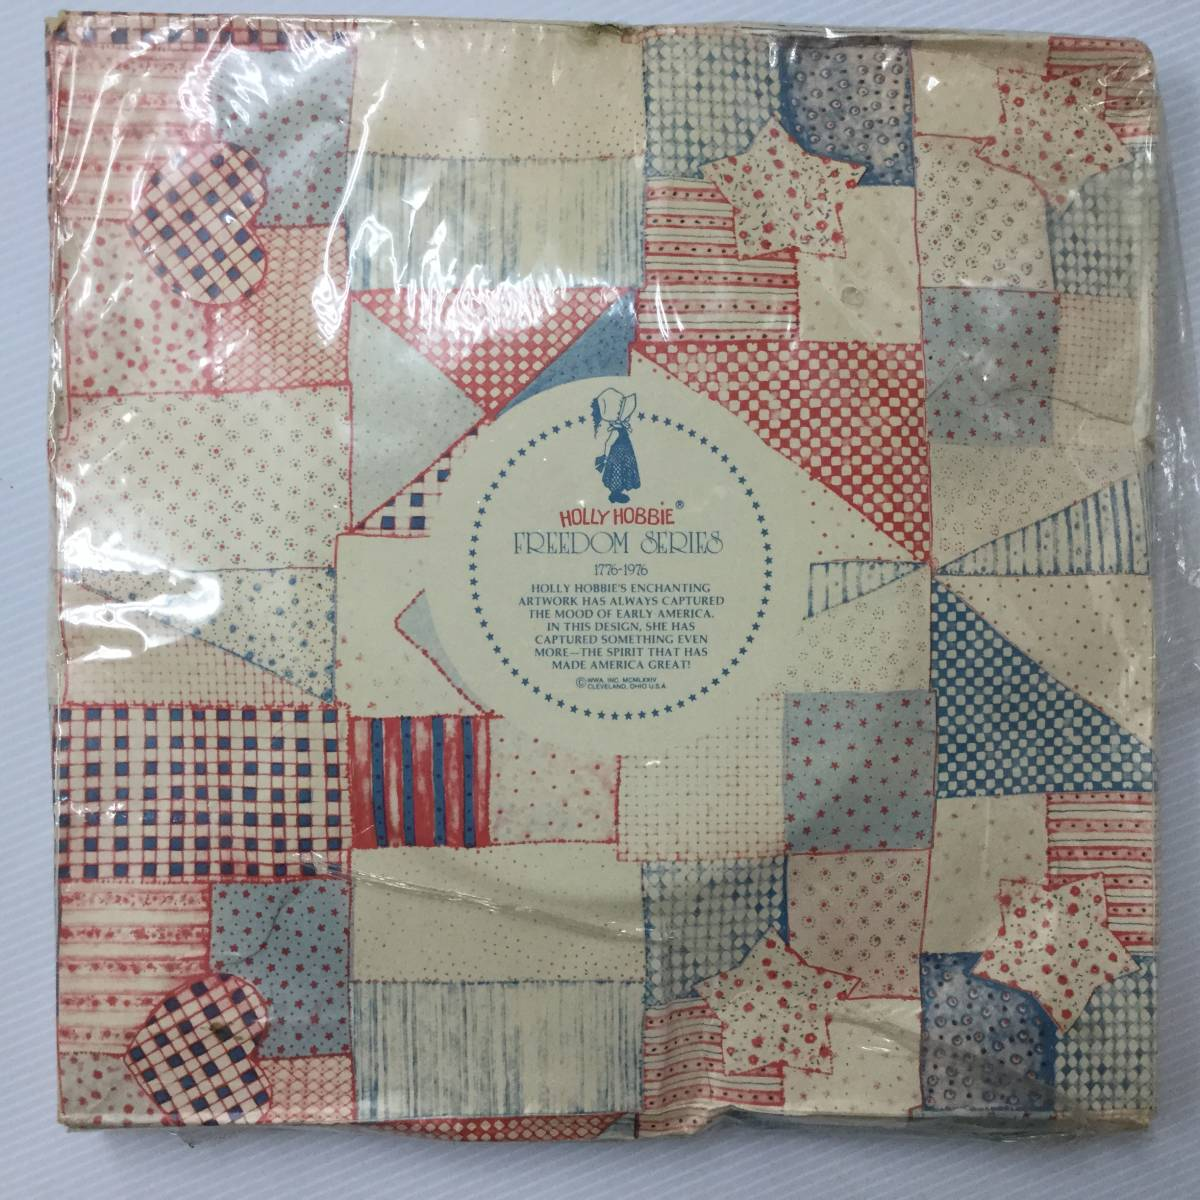 ■ARTBOOK_OUTLET■ 62-049 ★ 未開封 ホーリーホビー ヴィンテージ コレクター プレート 1974年 HOLLY HOBBIE VINTAGE COLLECTOR PLATE 3_画像4